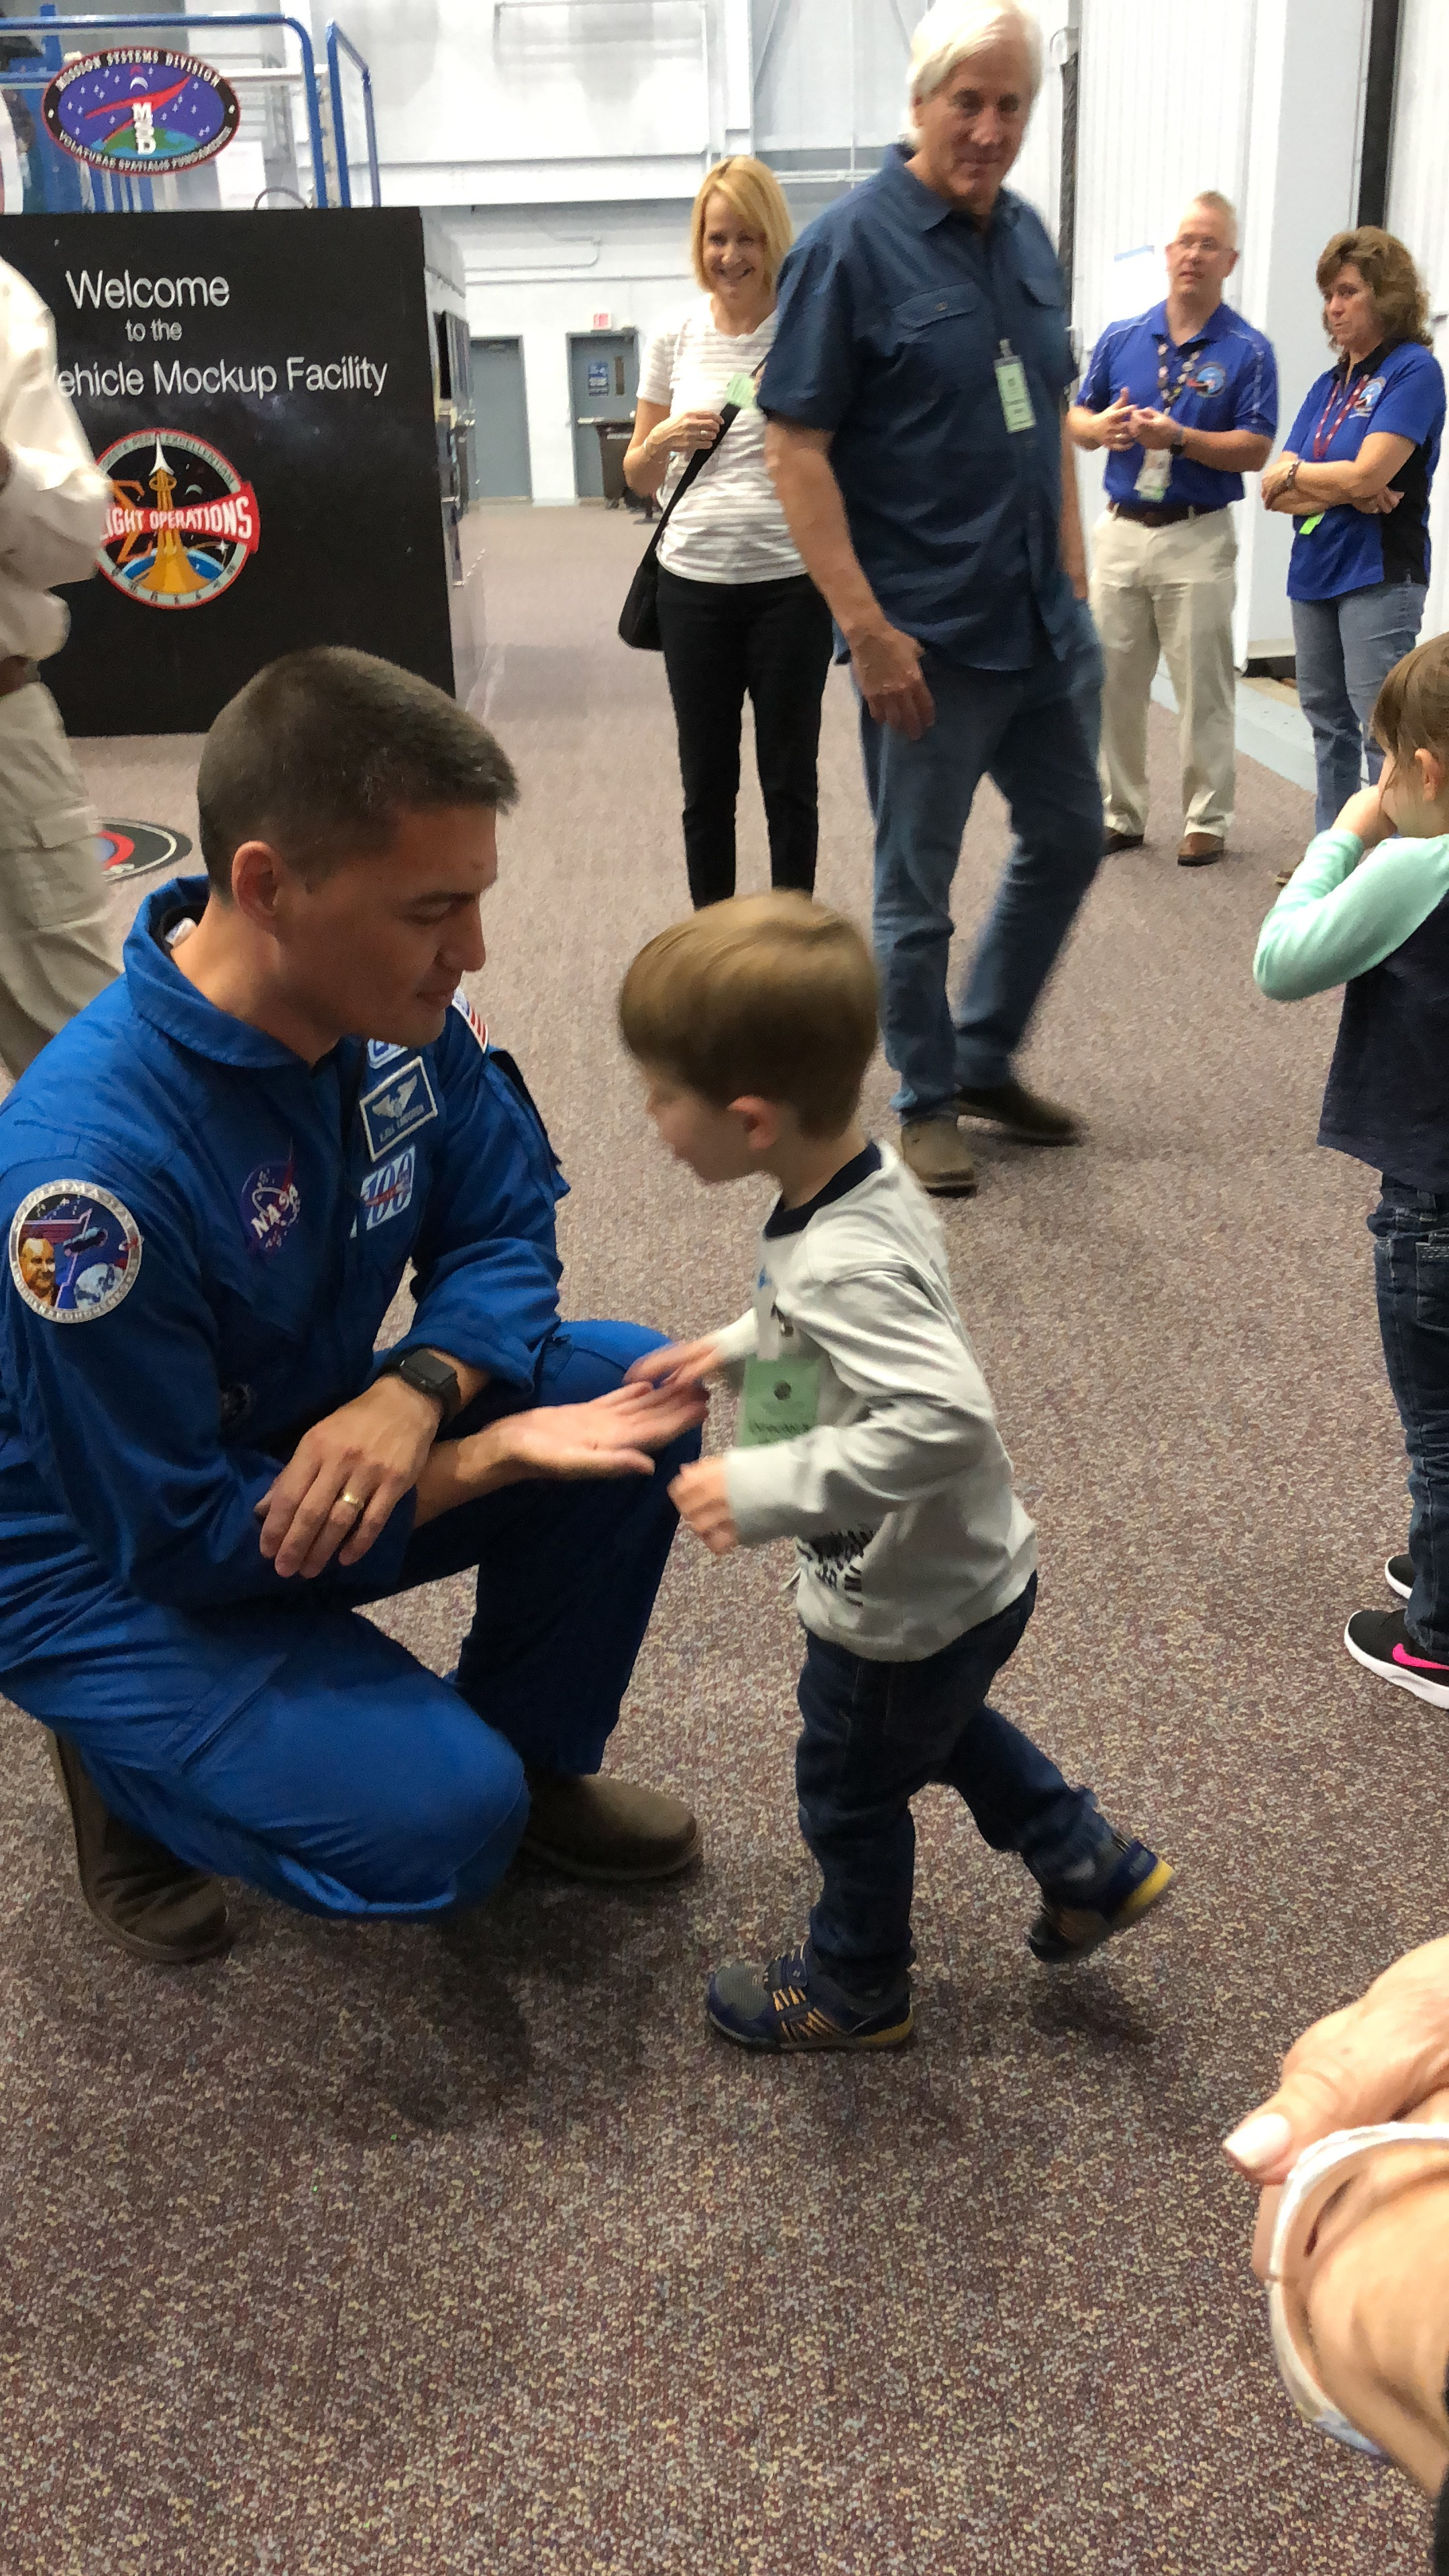 Dr. Kjell N. Lindgren was selected to be an astronaut by NASA in 2009. Here, he is seen with our young cousin Josh Hacker at the Space Vehicle Mockup Facility at NASA in Houston, Texas - October 2018